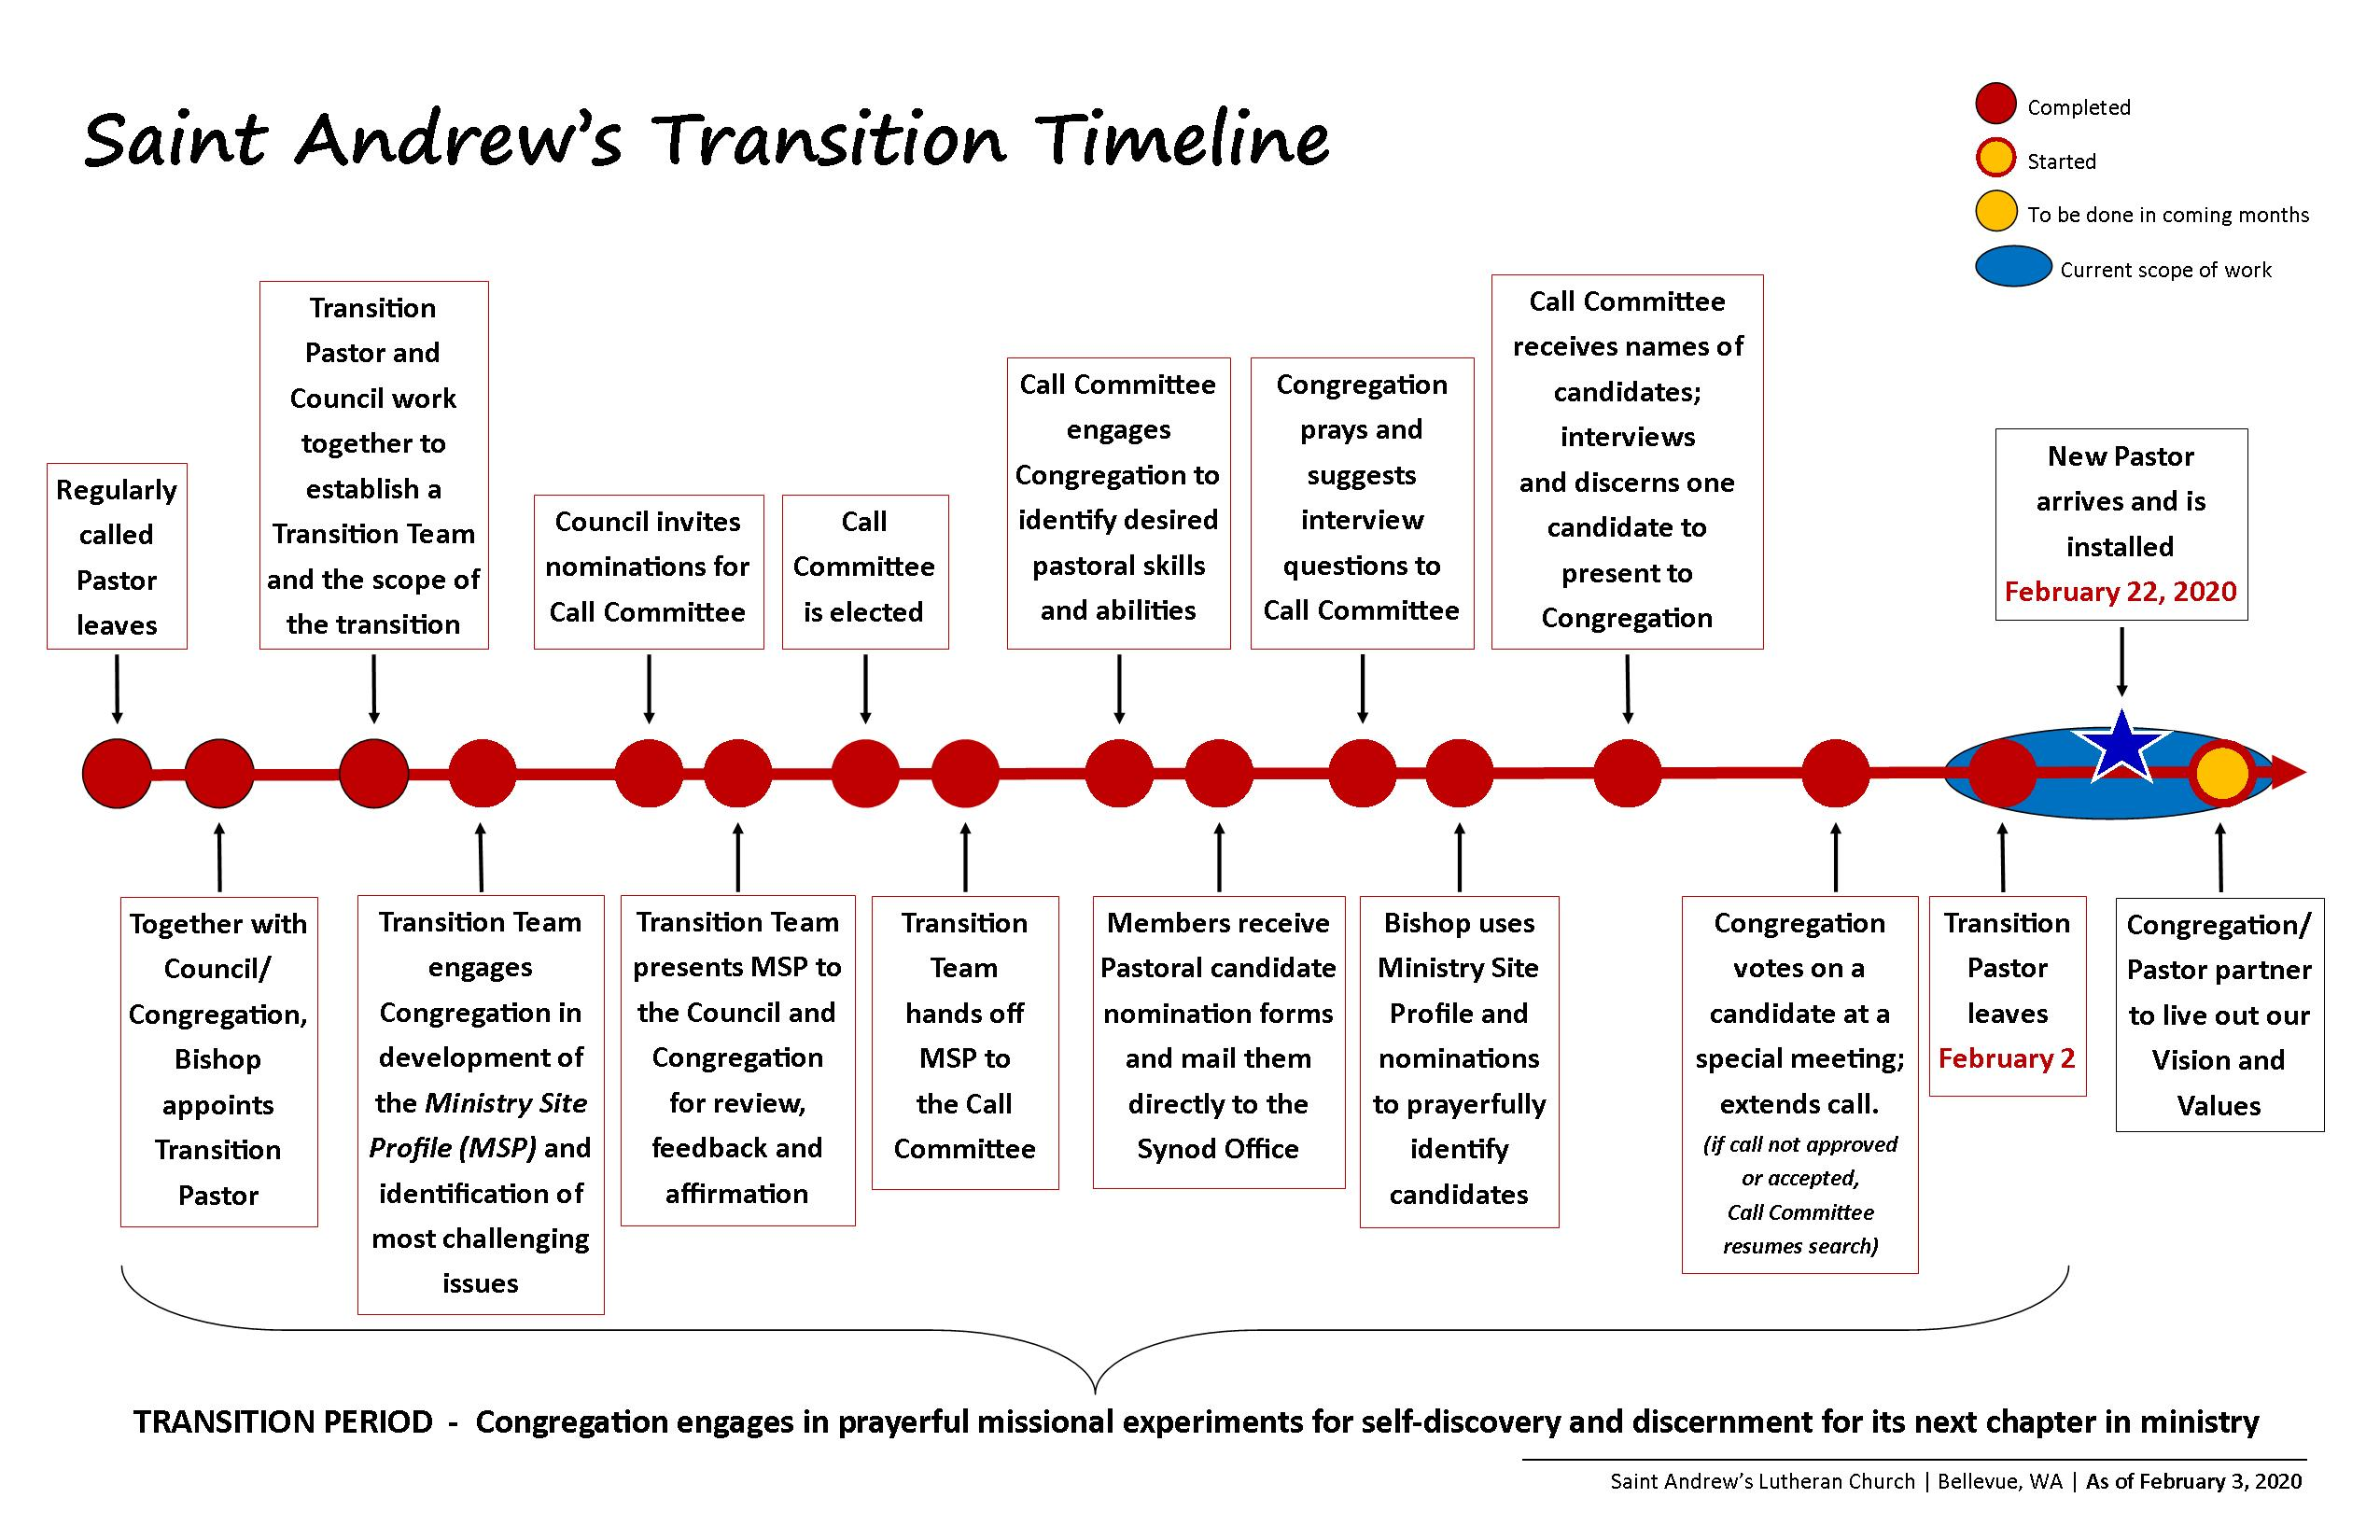 Image-TransitionTimeline-Current